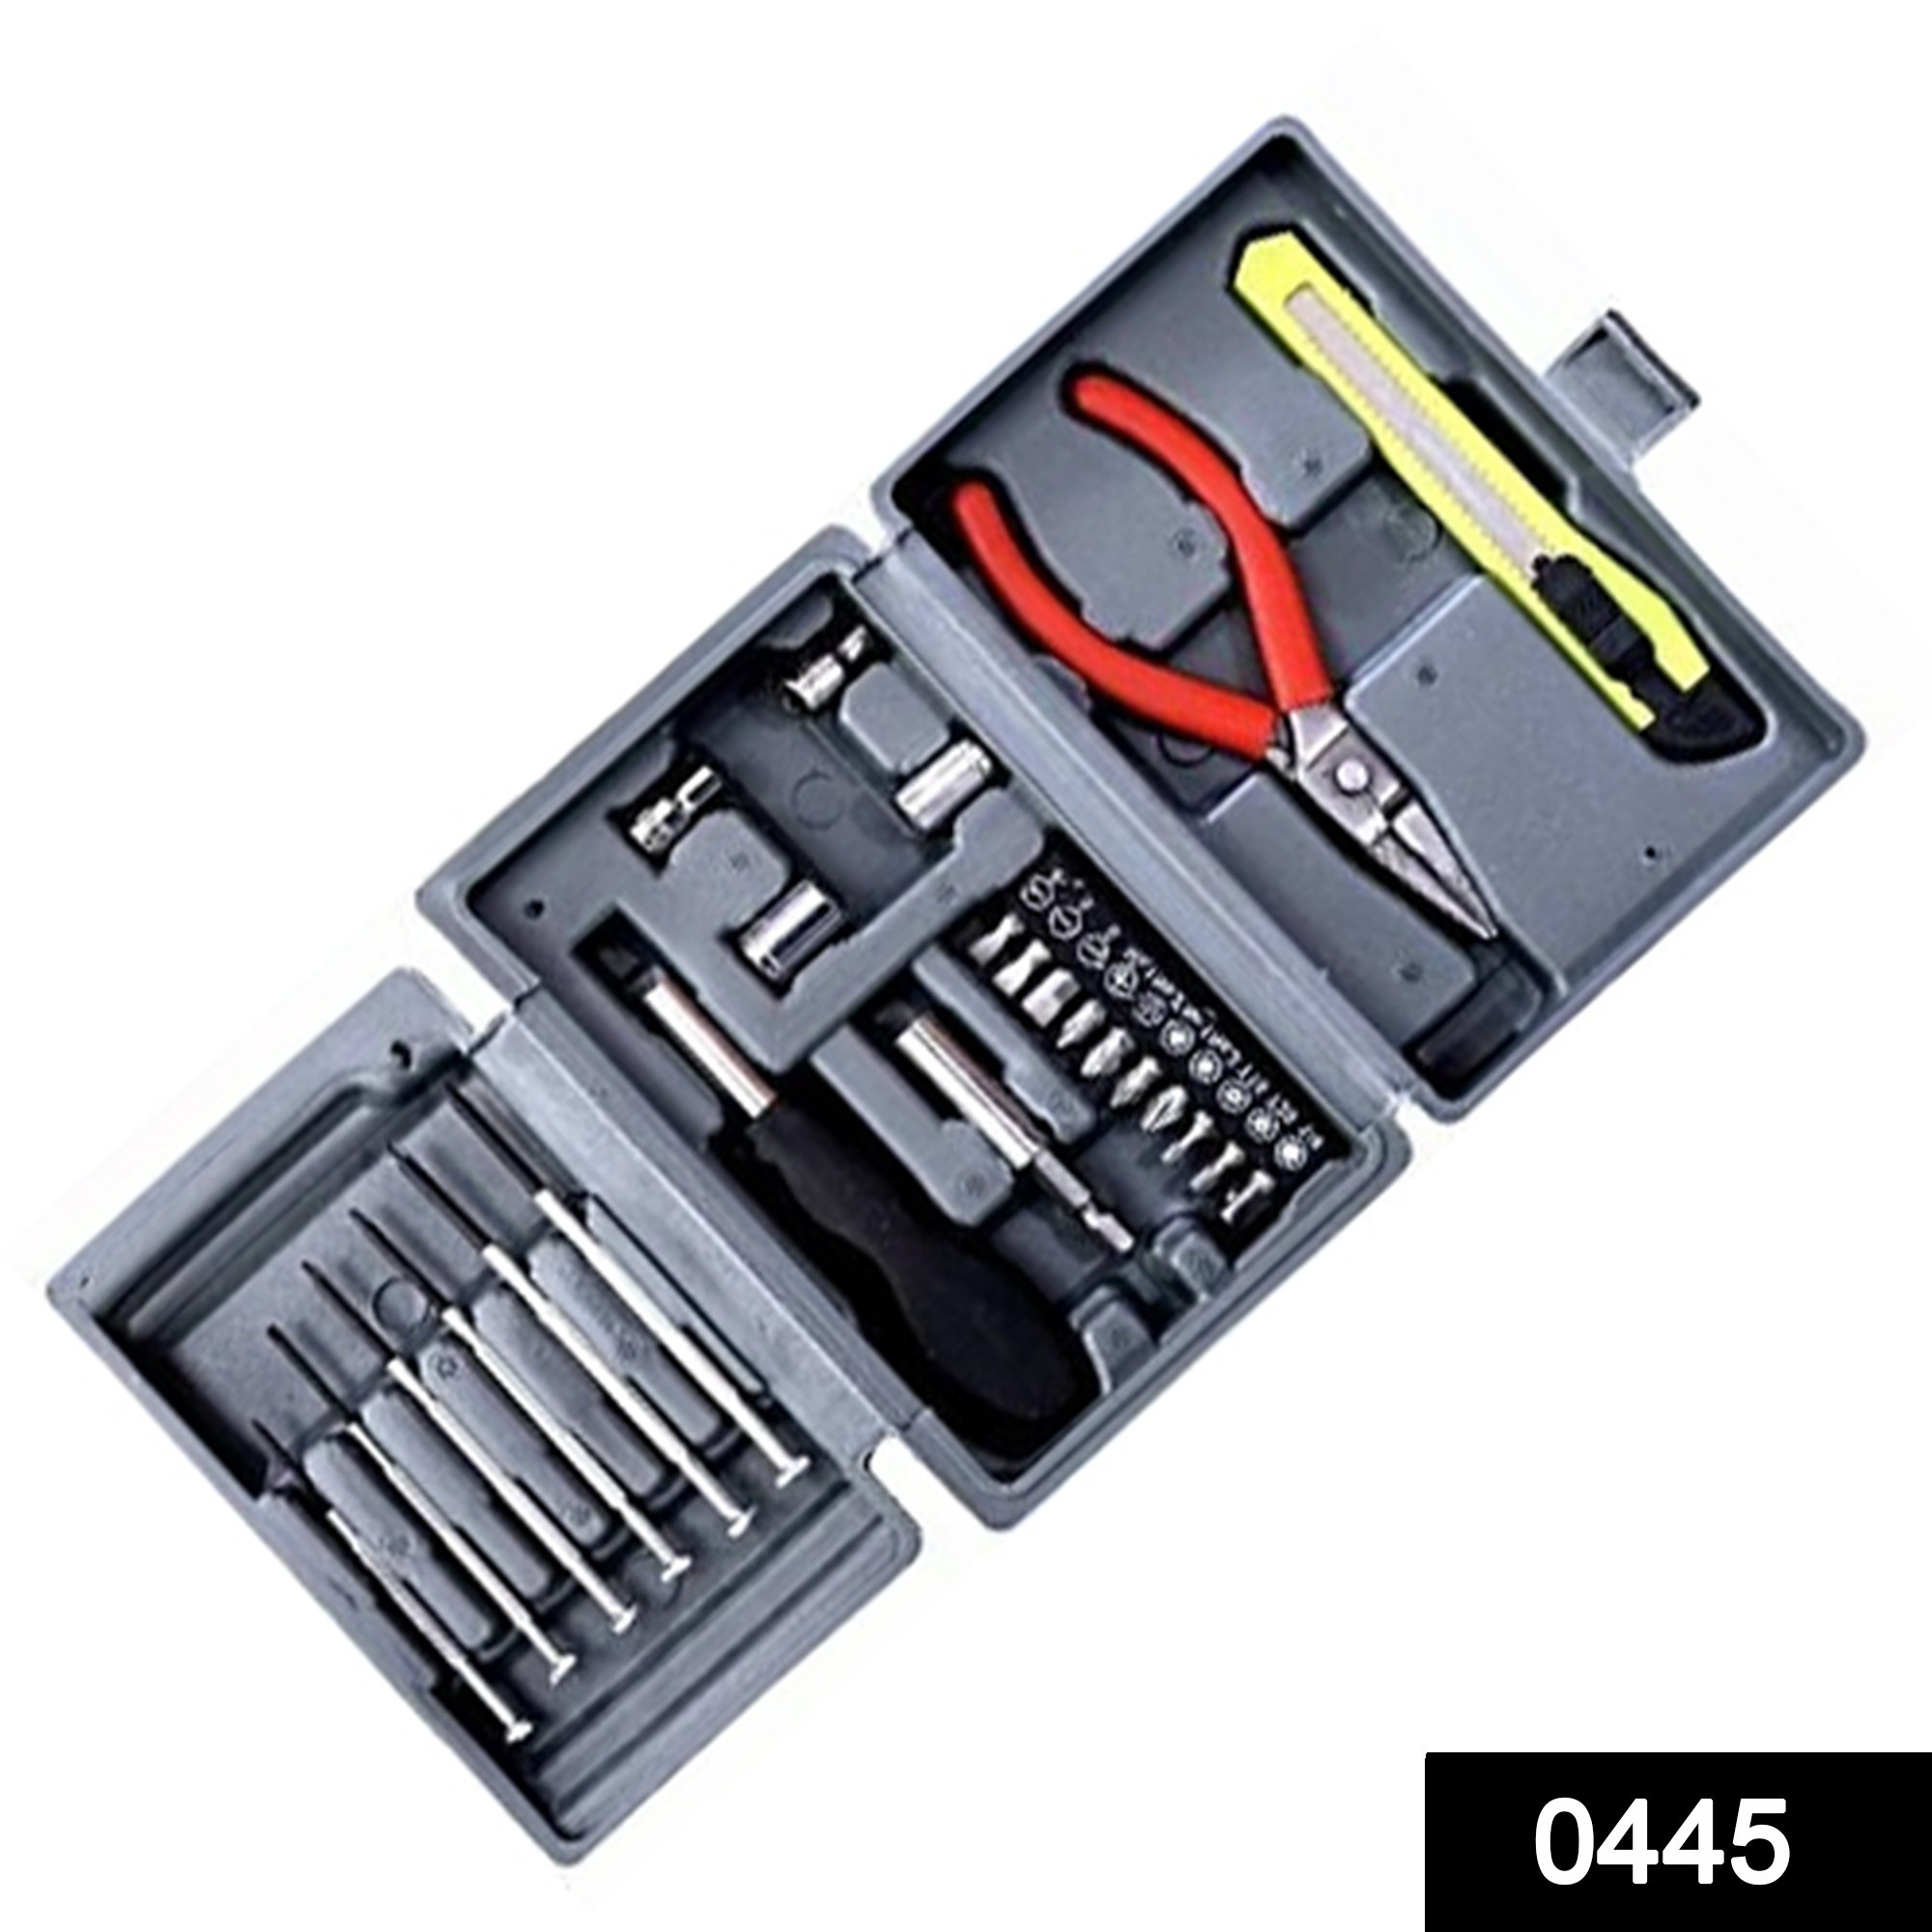 0445 Steel Screw Driver, Cutter and Pliers Set -